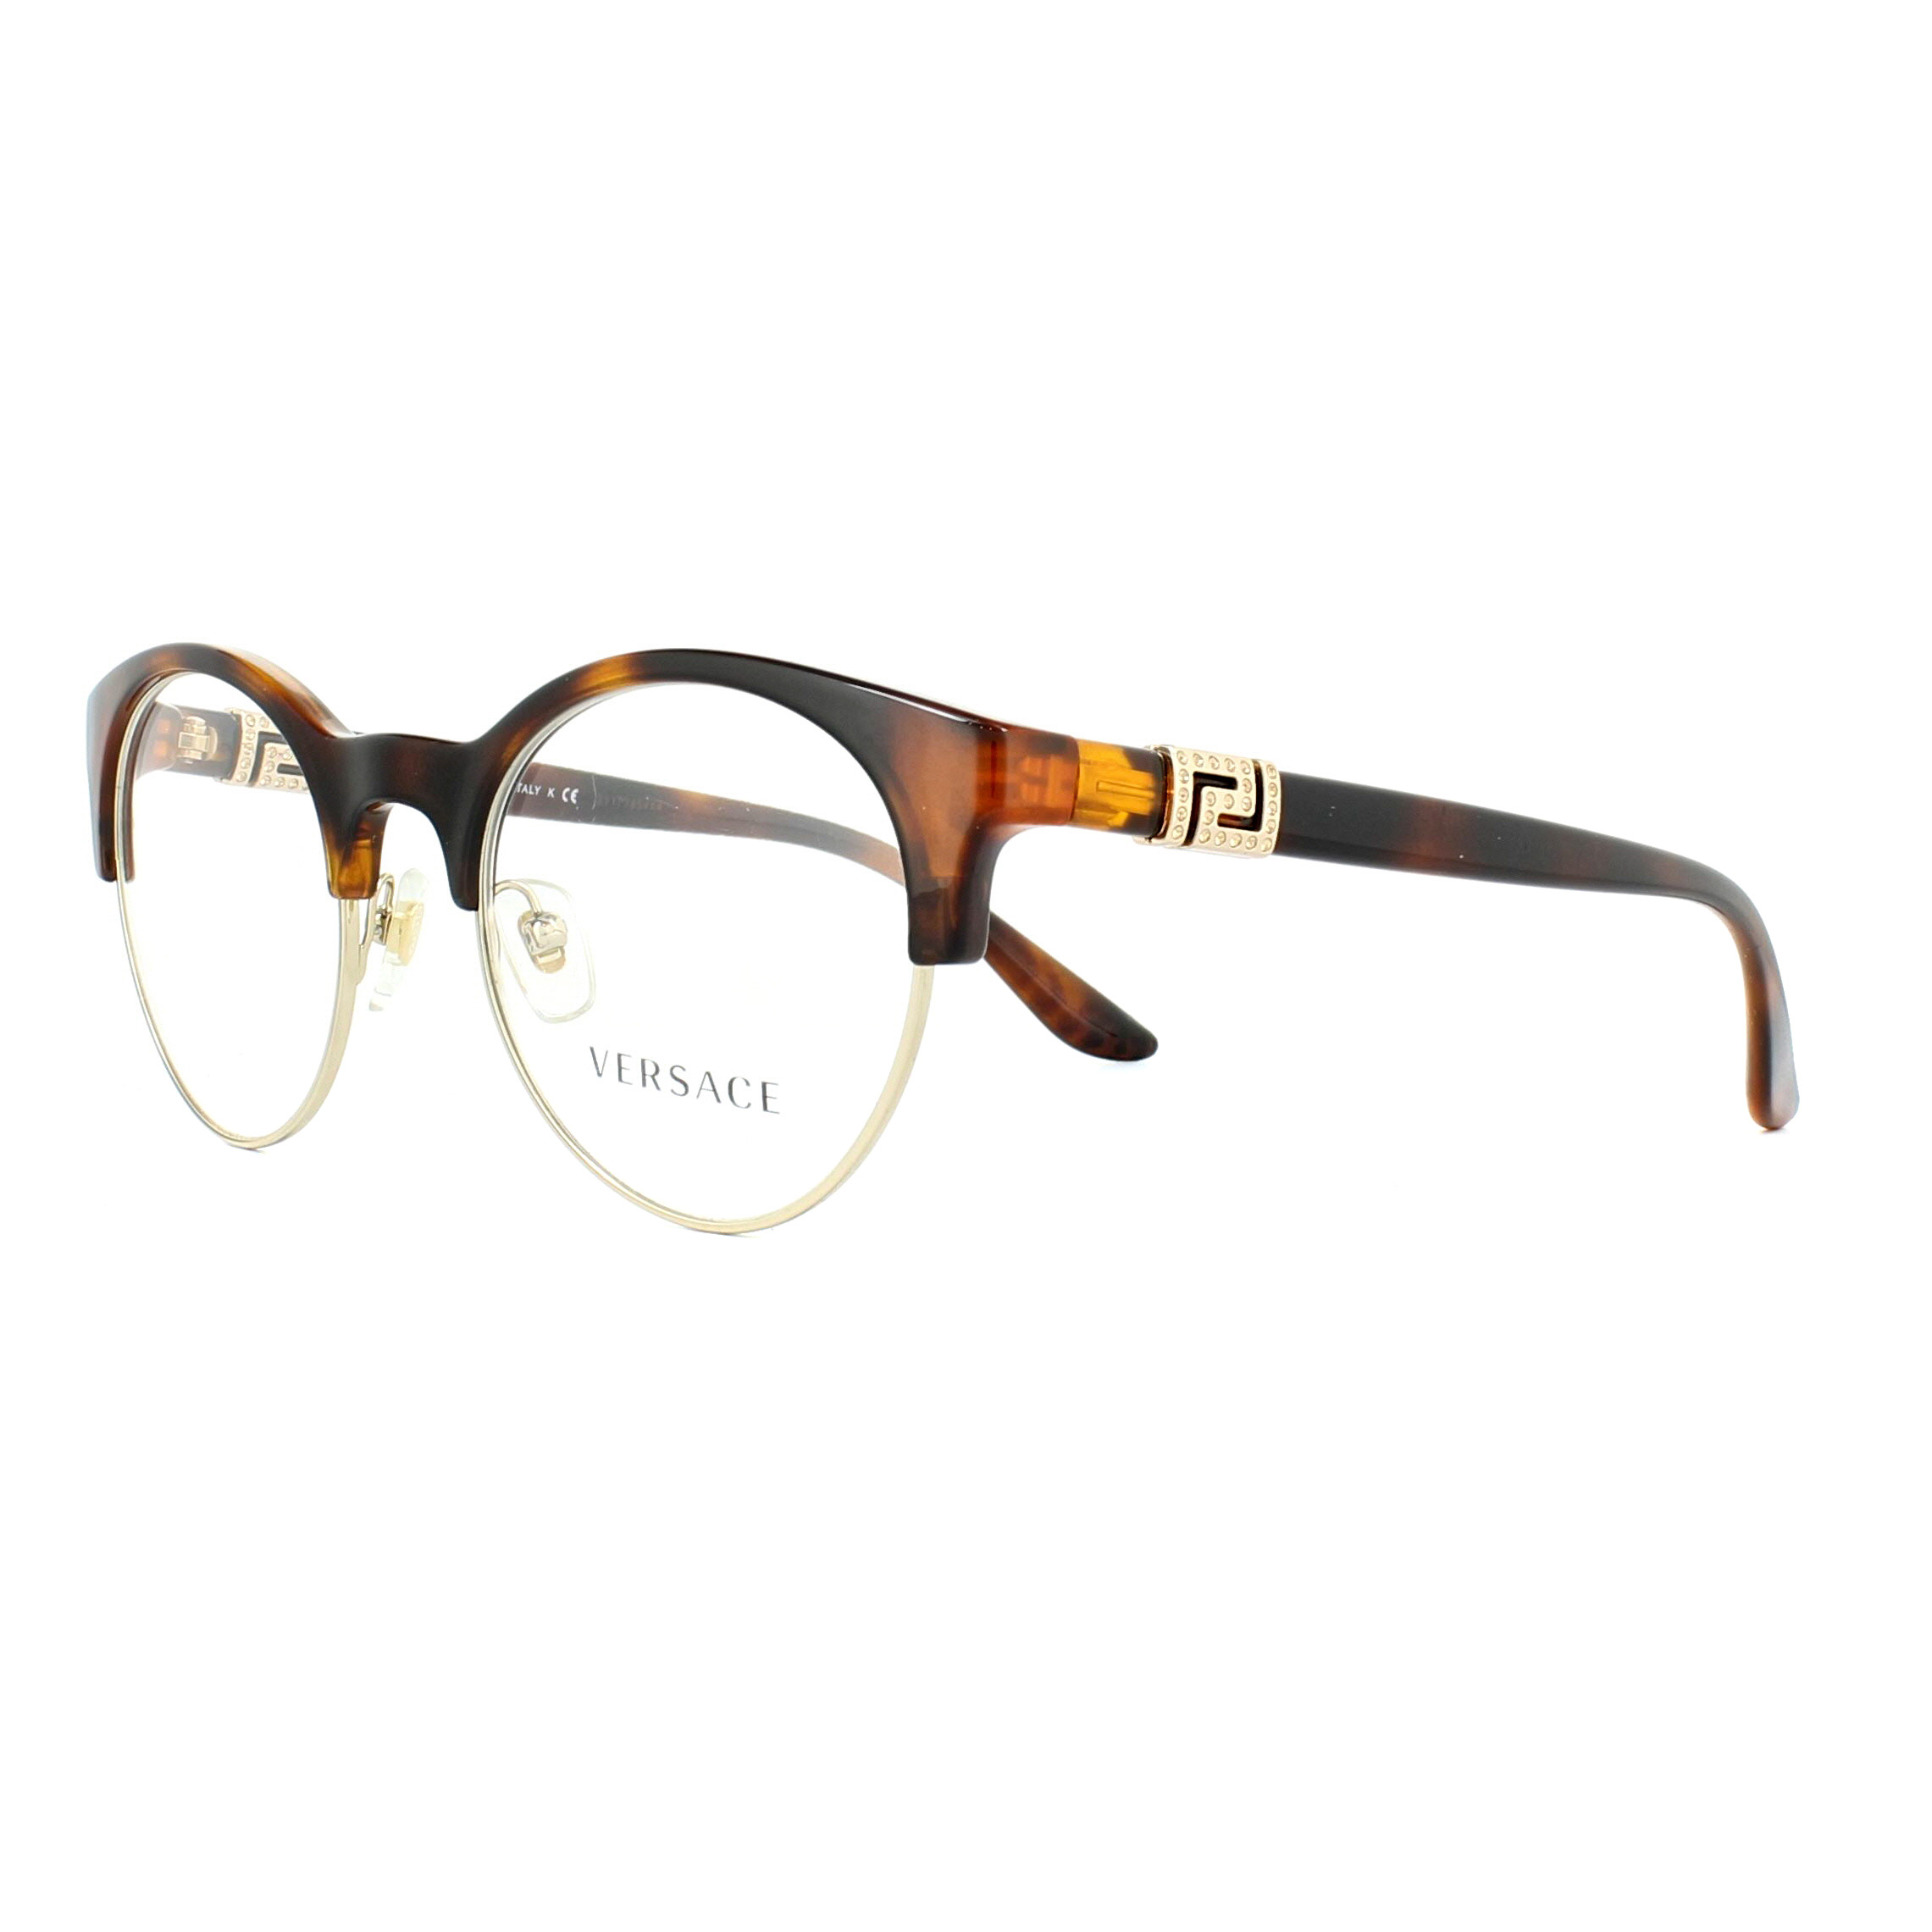 421c48657ad2 Cheap Versace 3233B Glasses Frames - Discounted Sunglasses